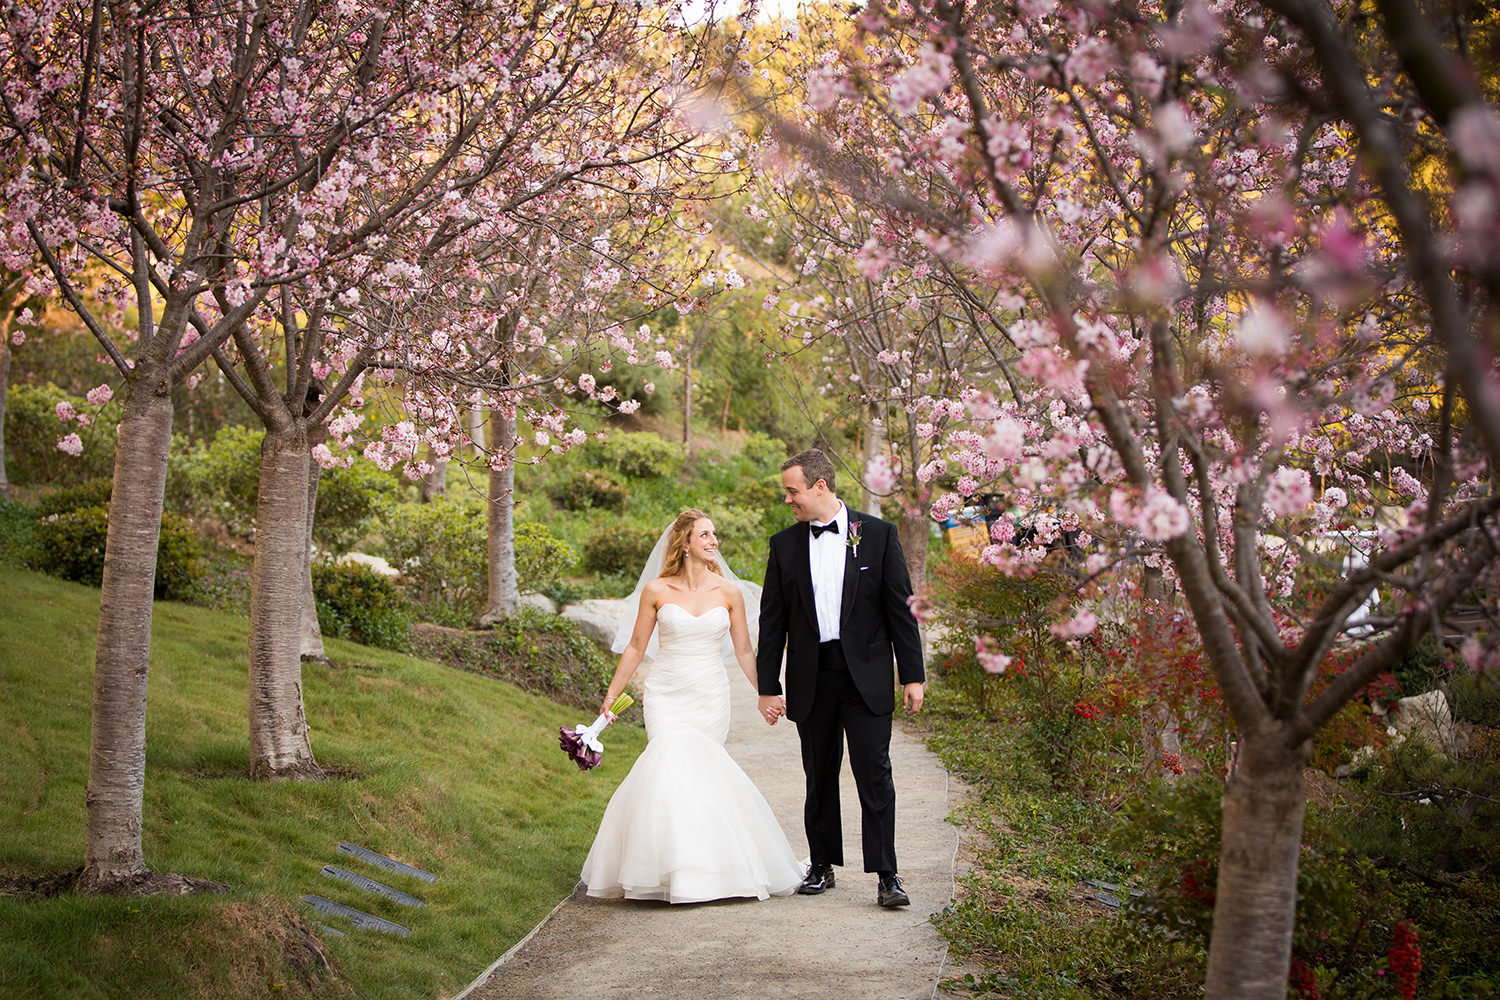 bride and groom walking through the cherry blossom trees